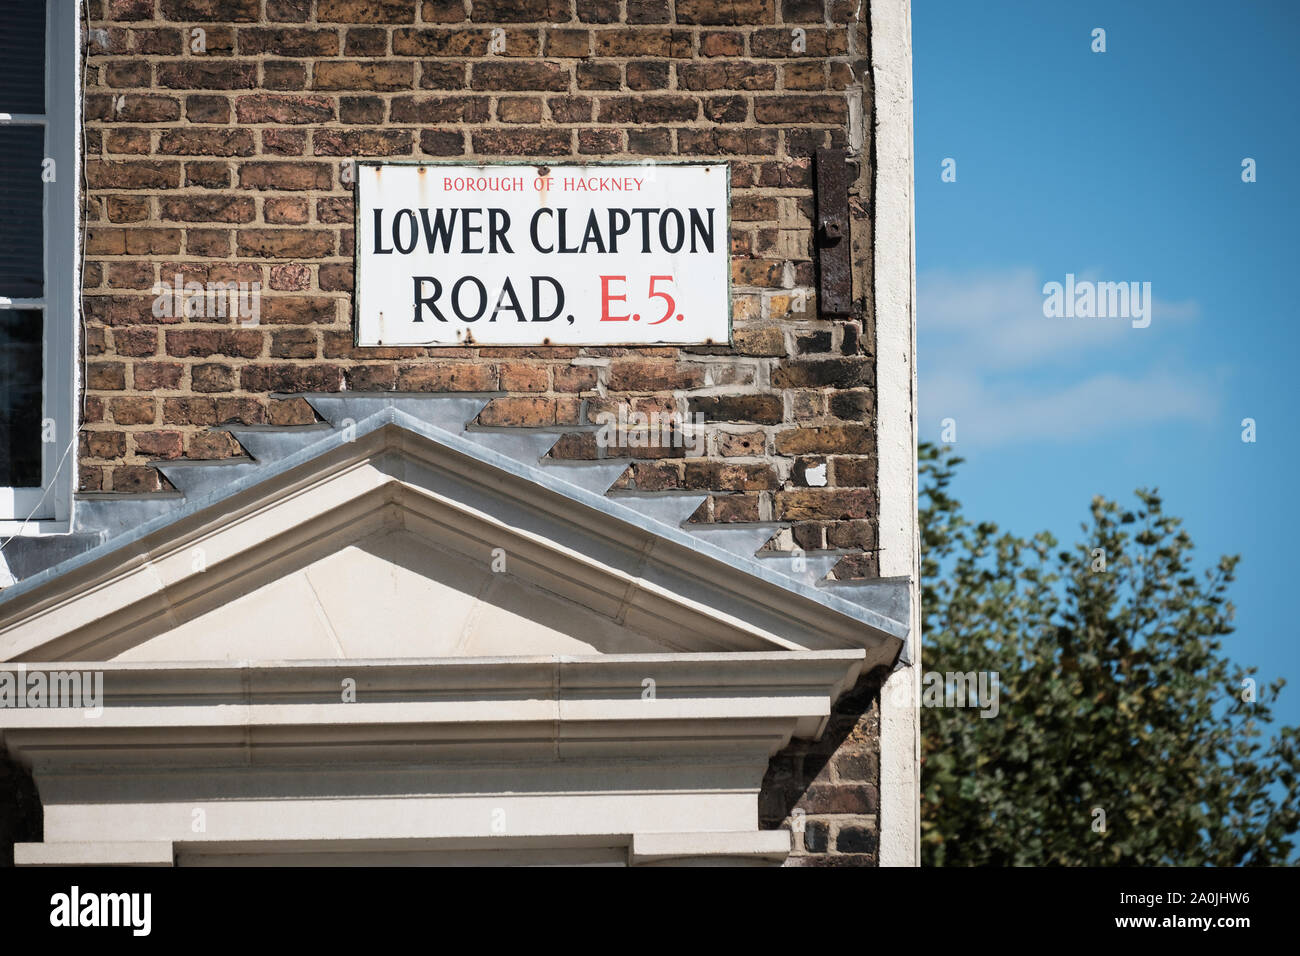 Street sign for Lower Clapton Road, Hackney, East London, UK Stock Photo